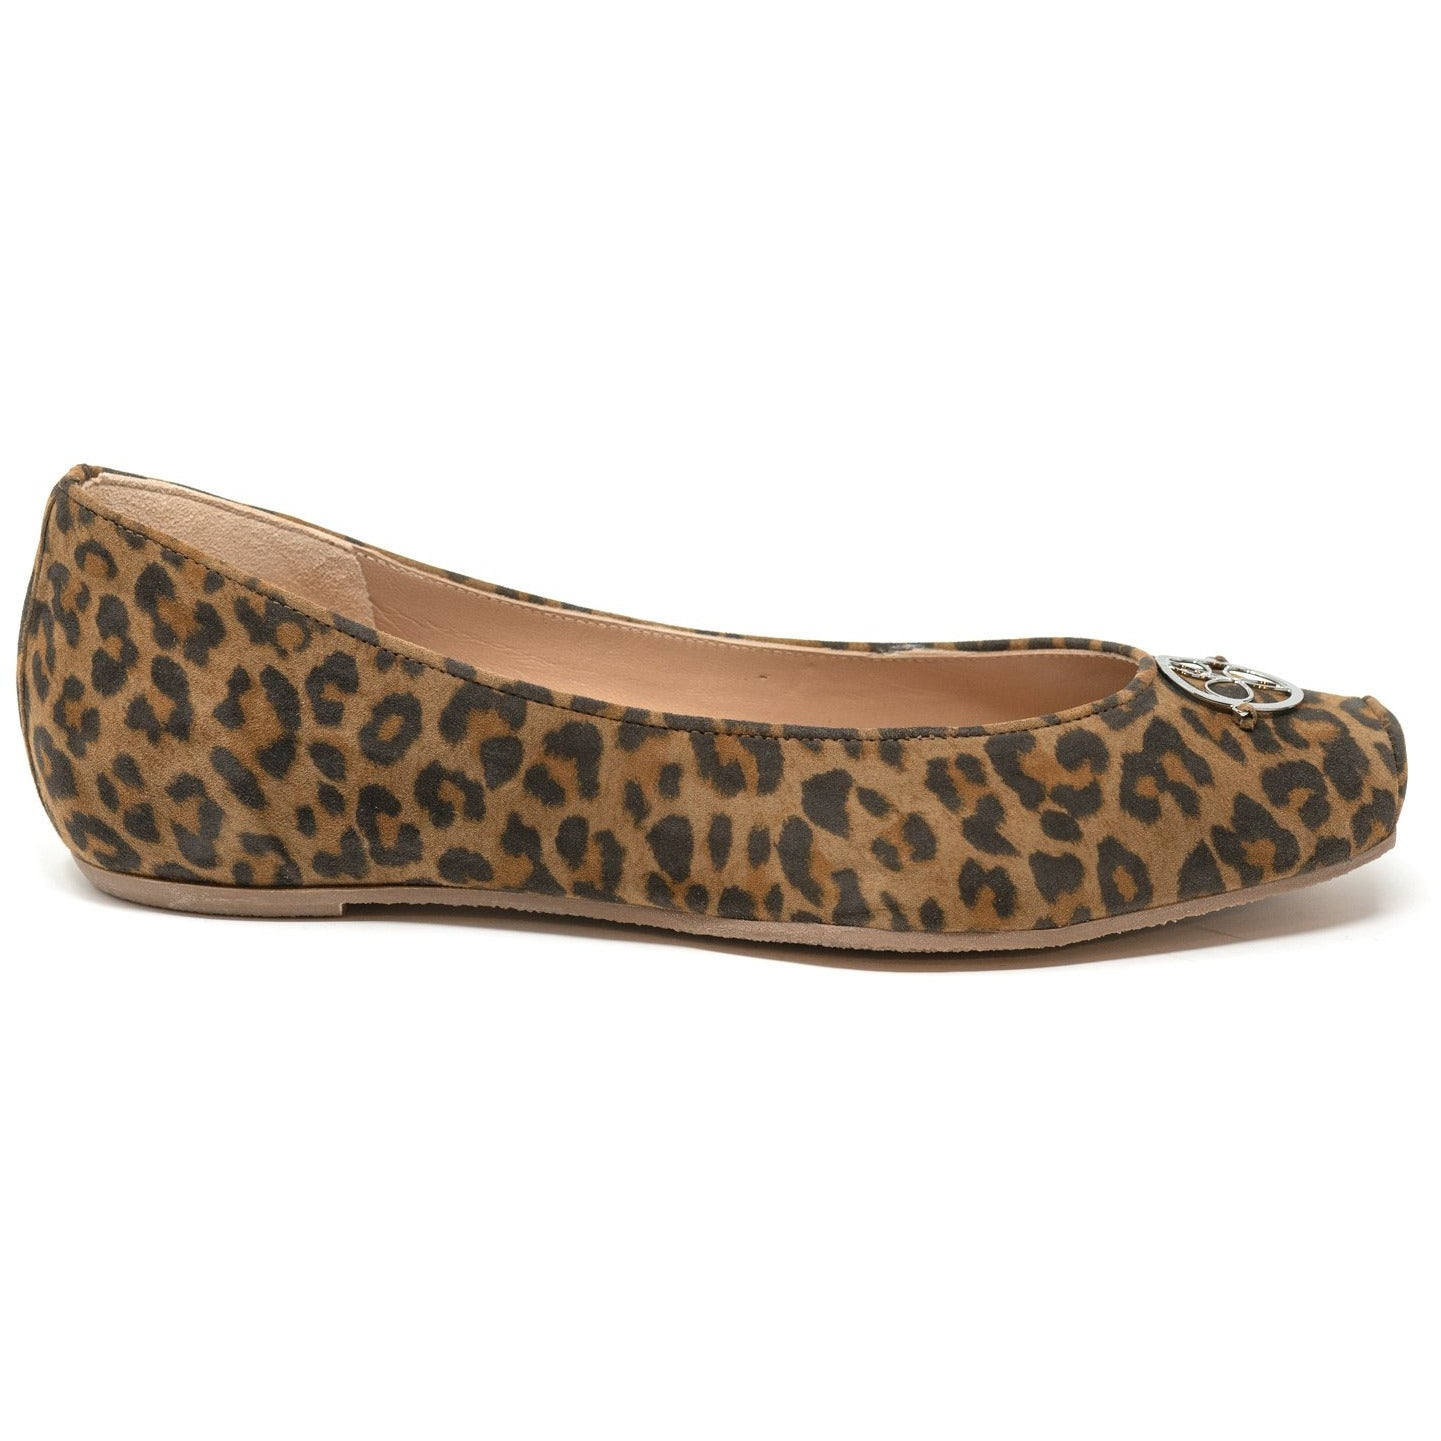 MIL722 15 Leopard Lamb Hair Ballerinas with hidden heel - New Spring Summer 2020 Collection